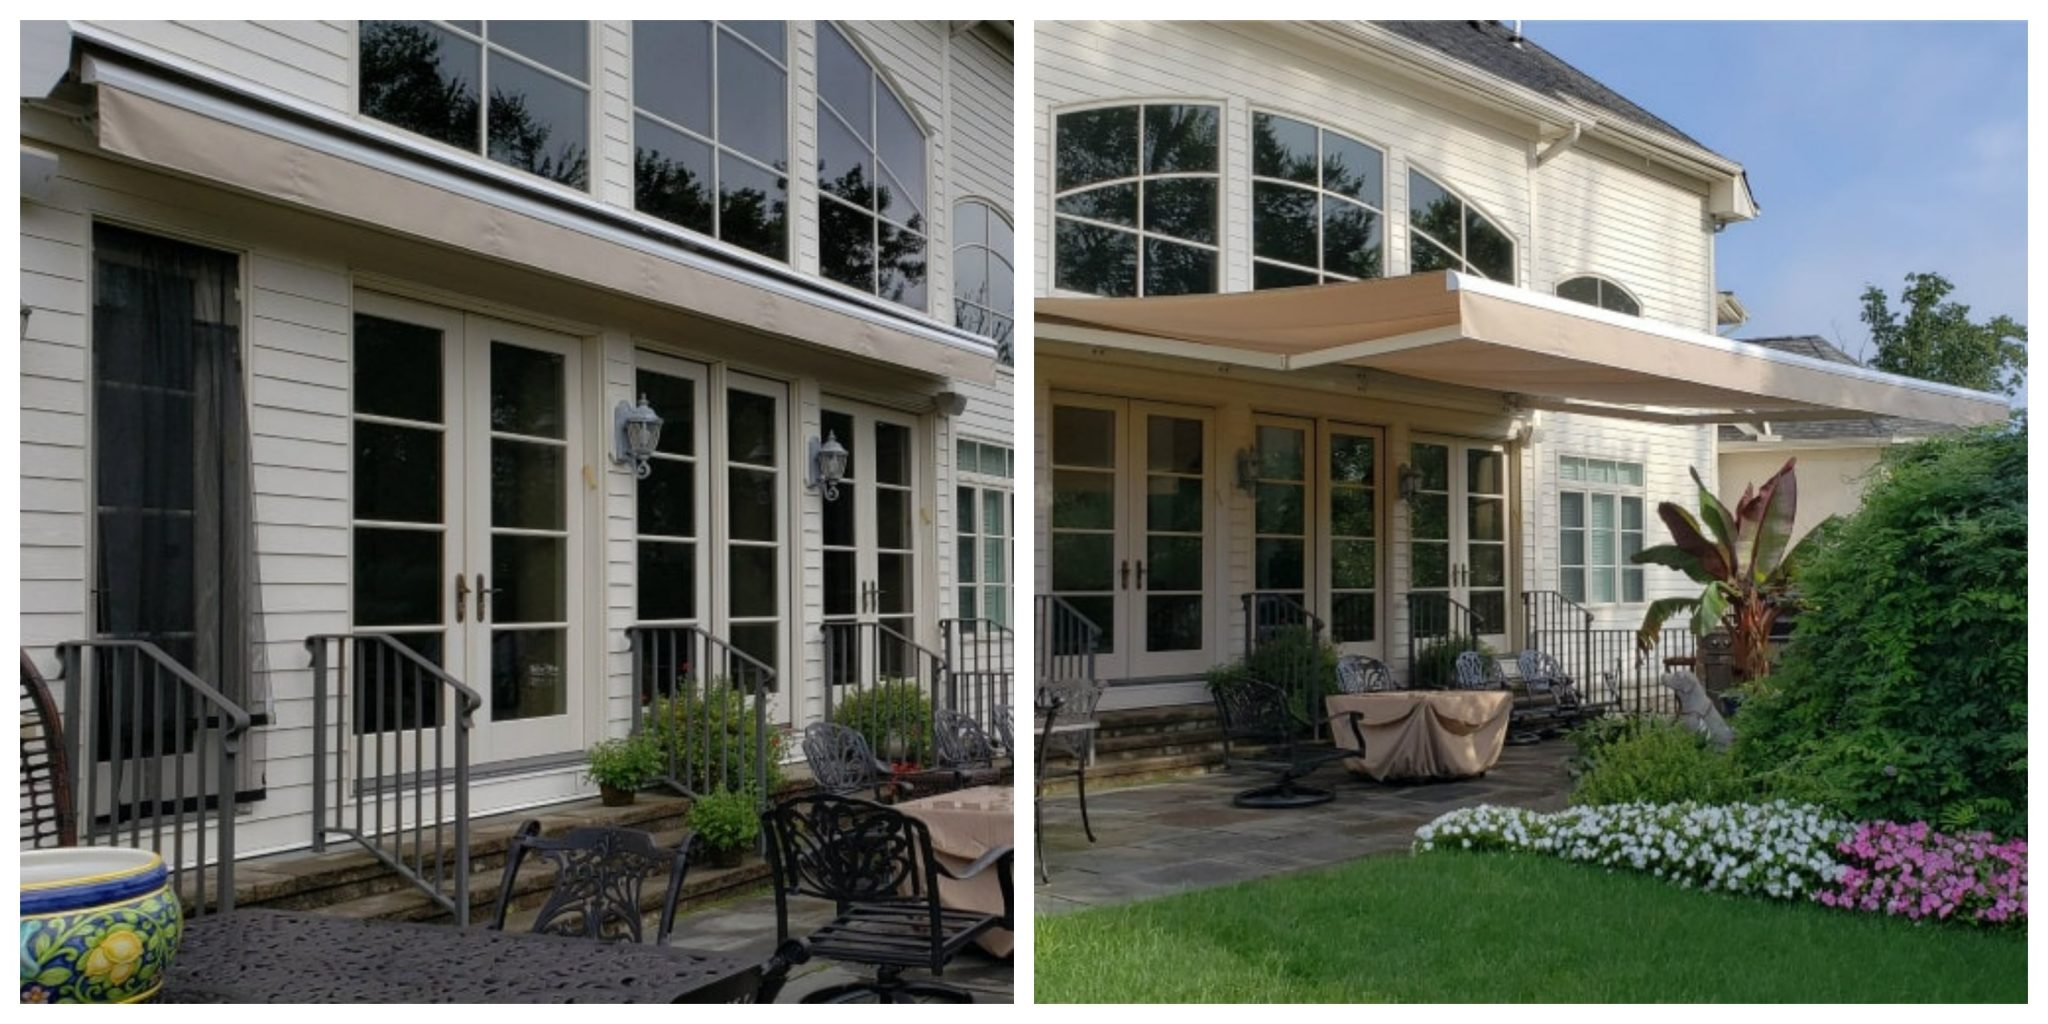 Retractable Awning Design New Jersey